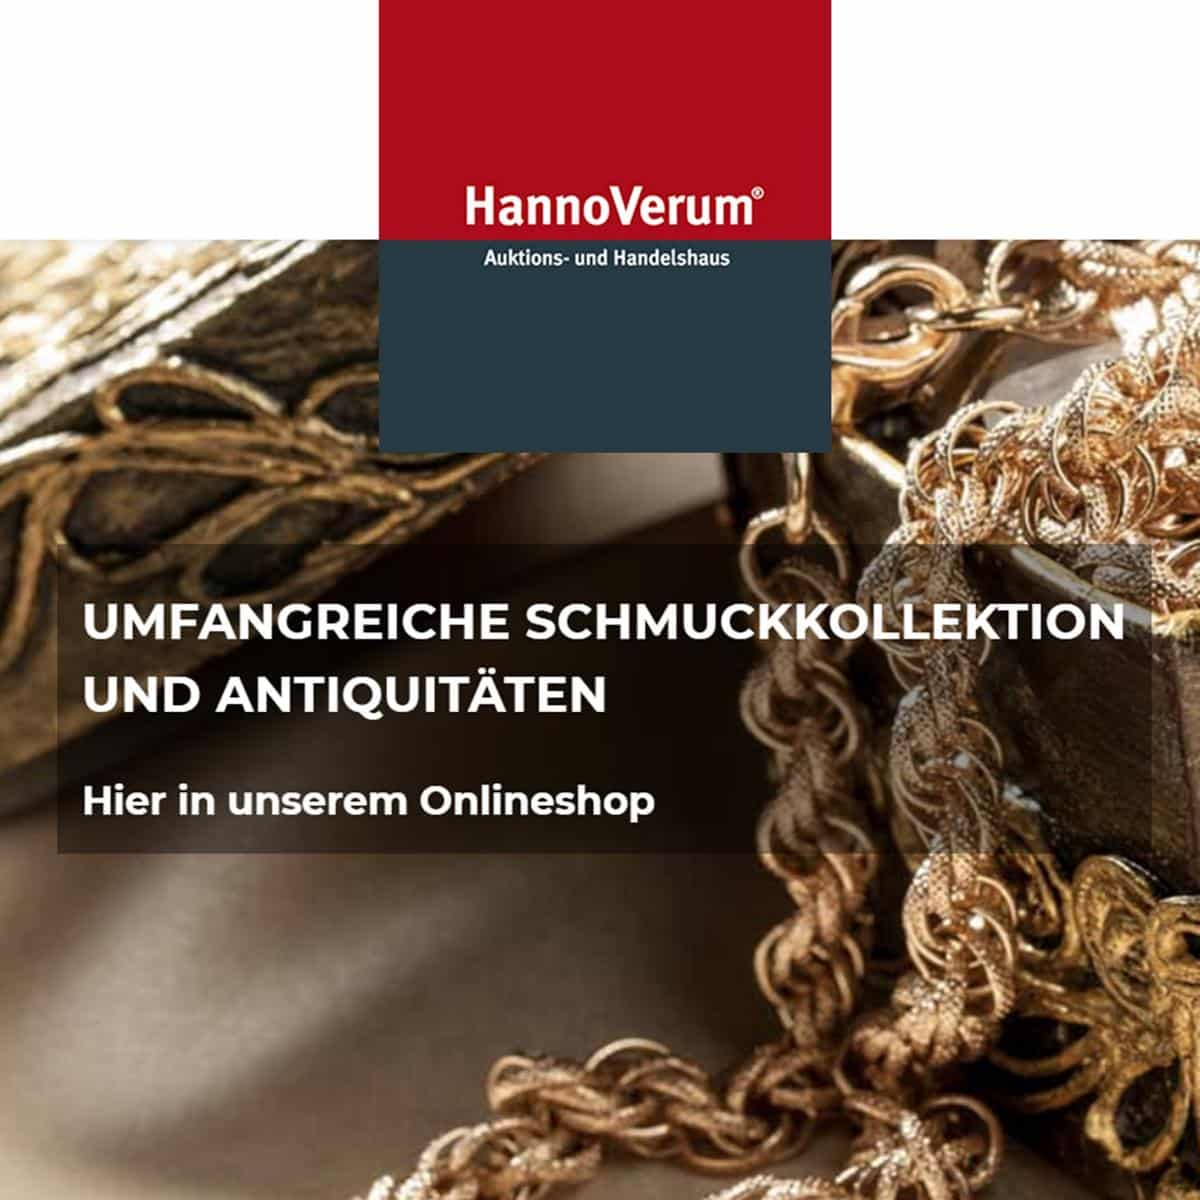 style hannover hannoverum online shop B - Support your locals